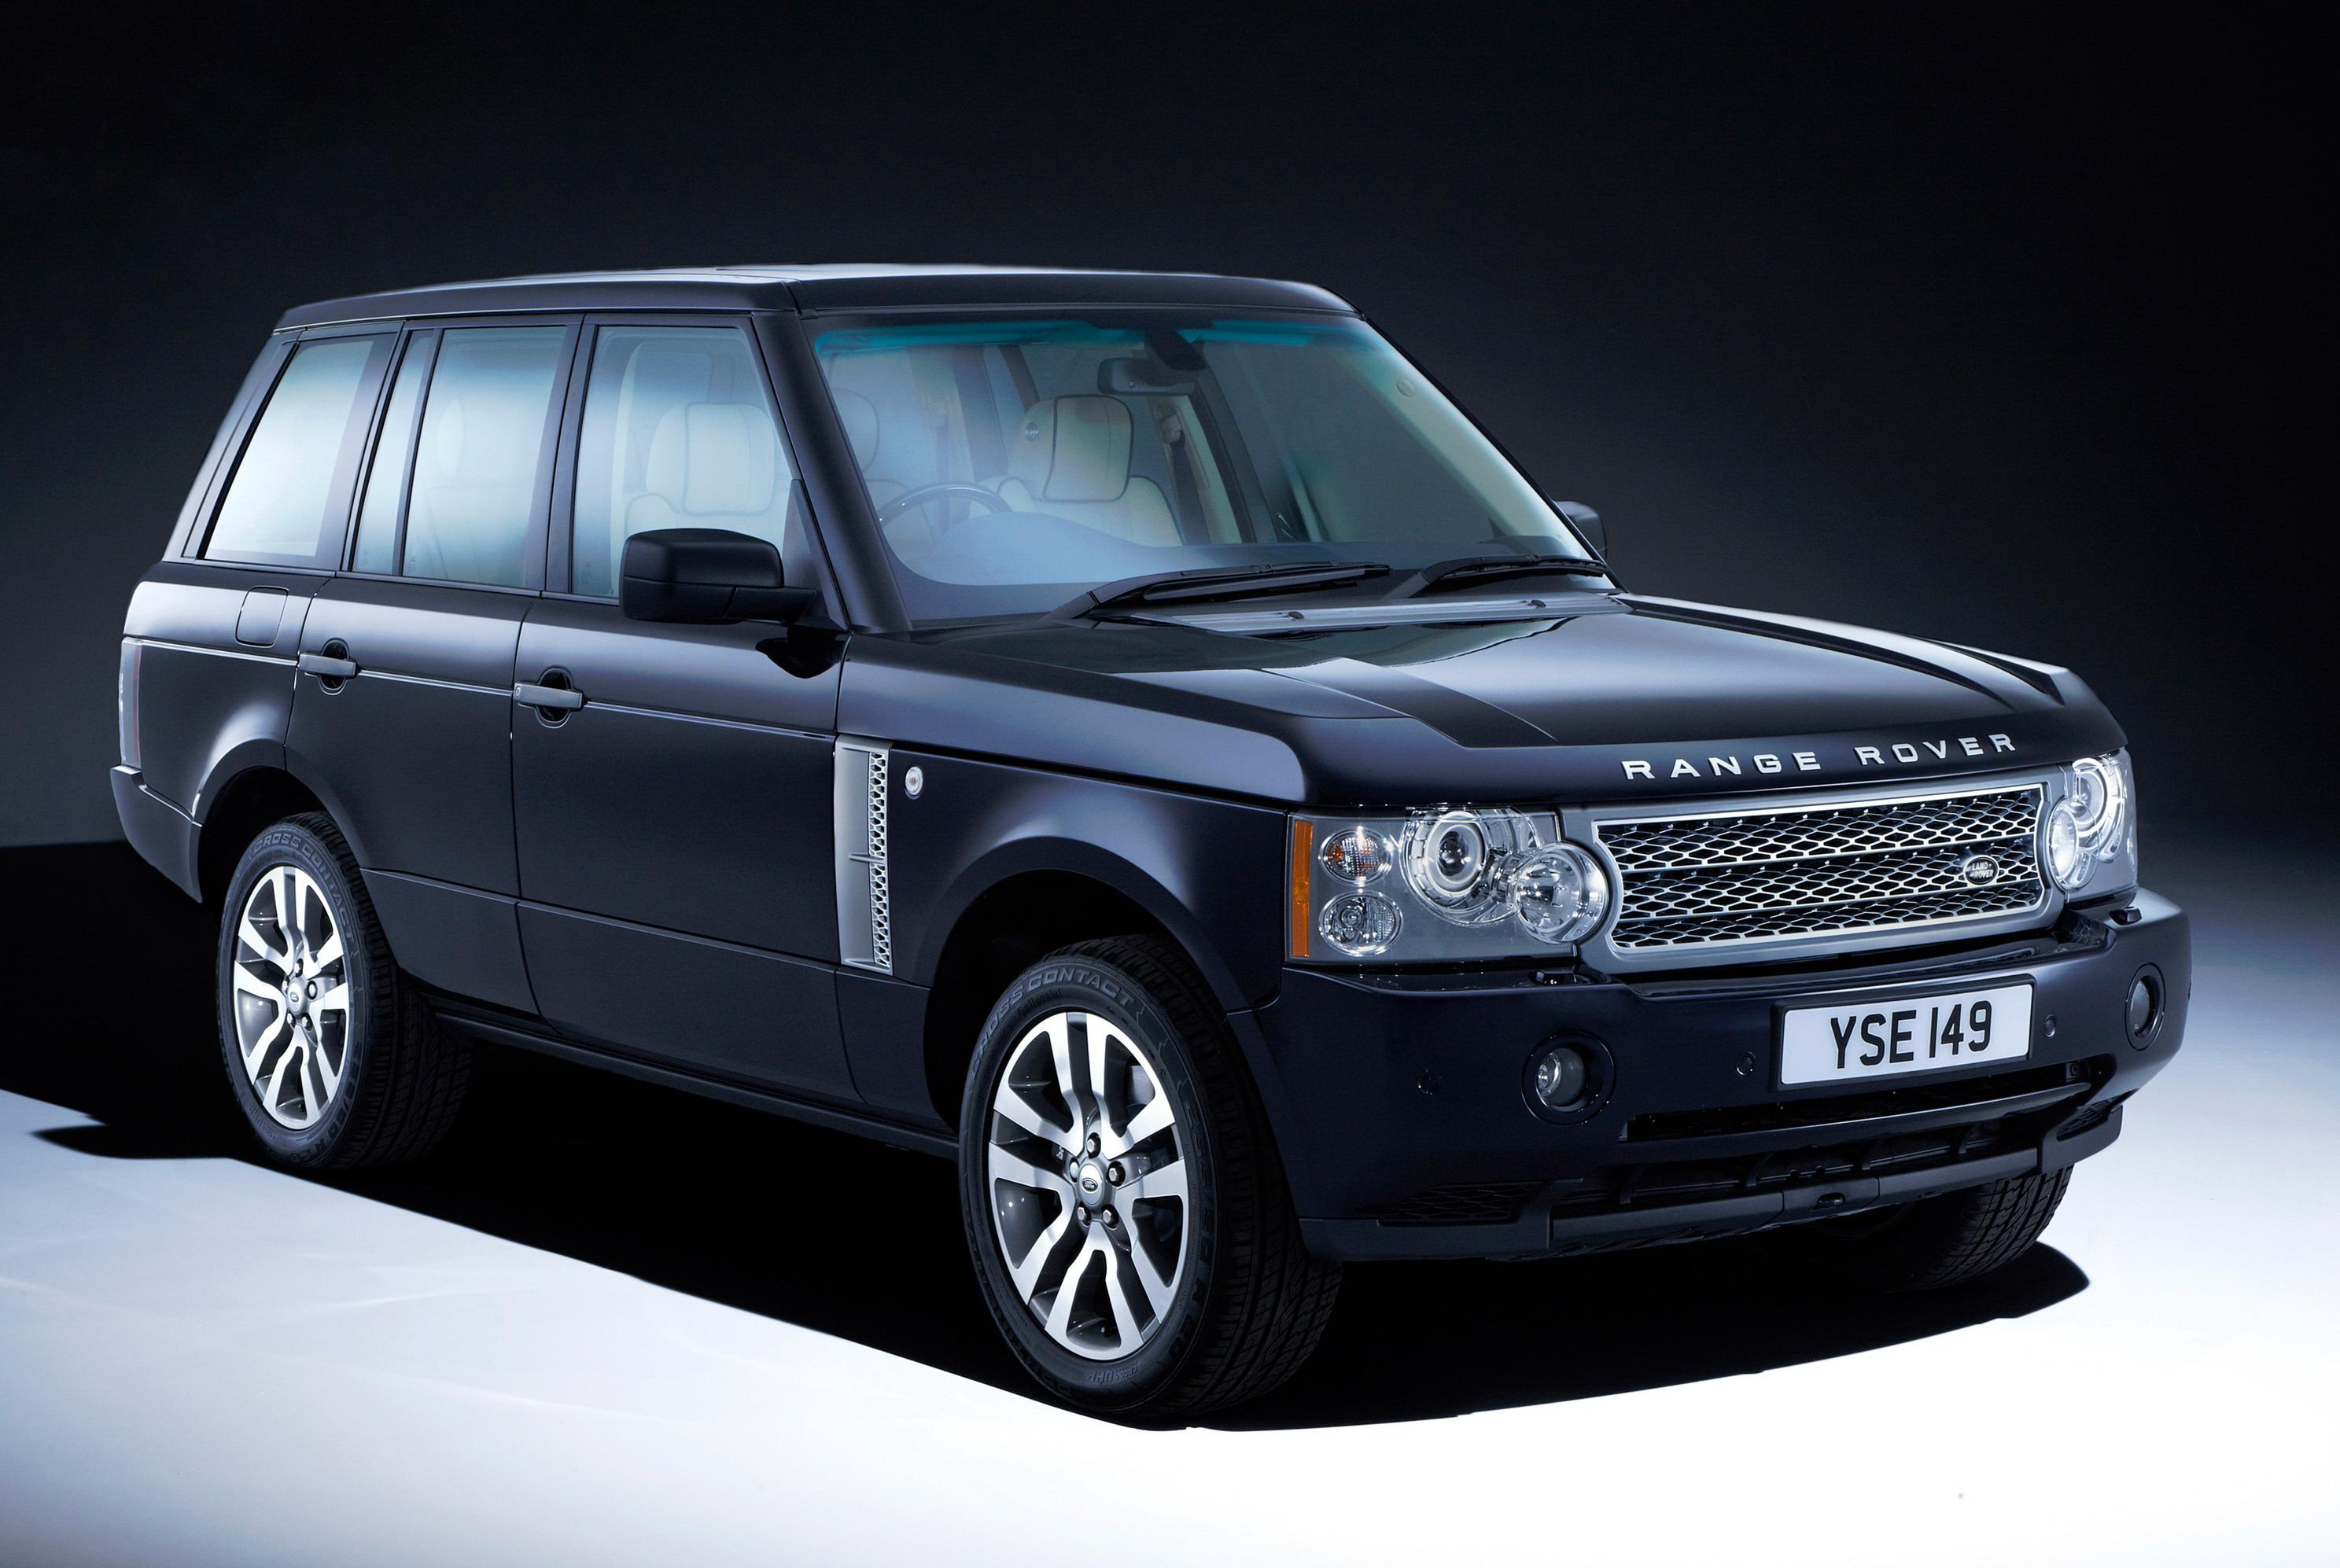 2009 Range Rover Westminster Limited Edition Top Speed